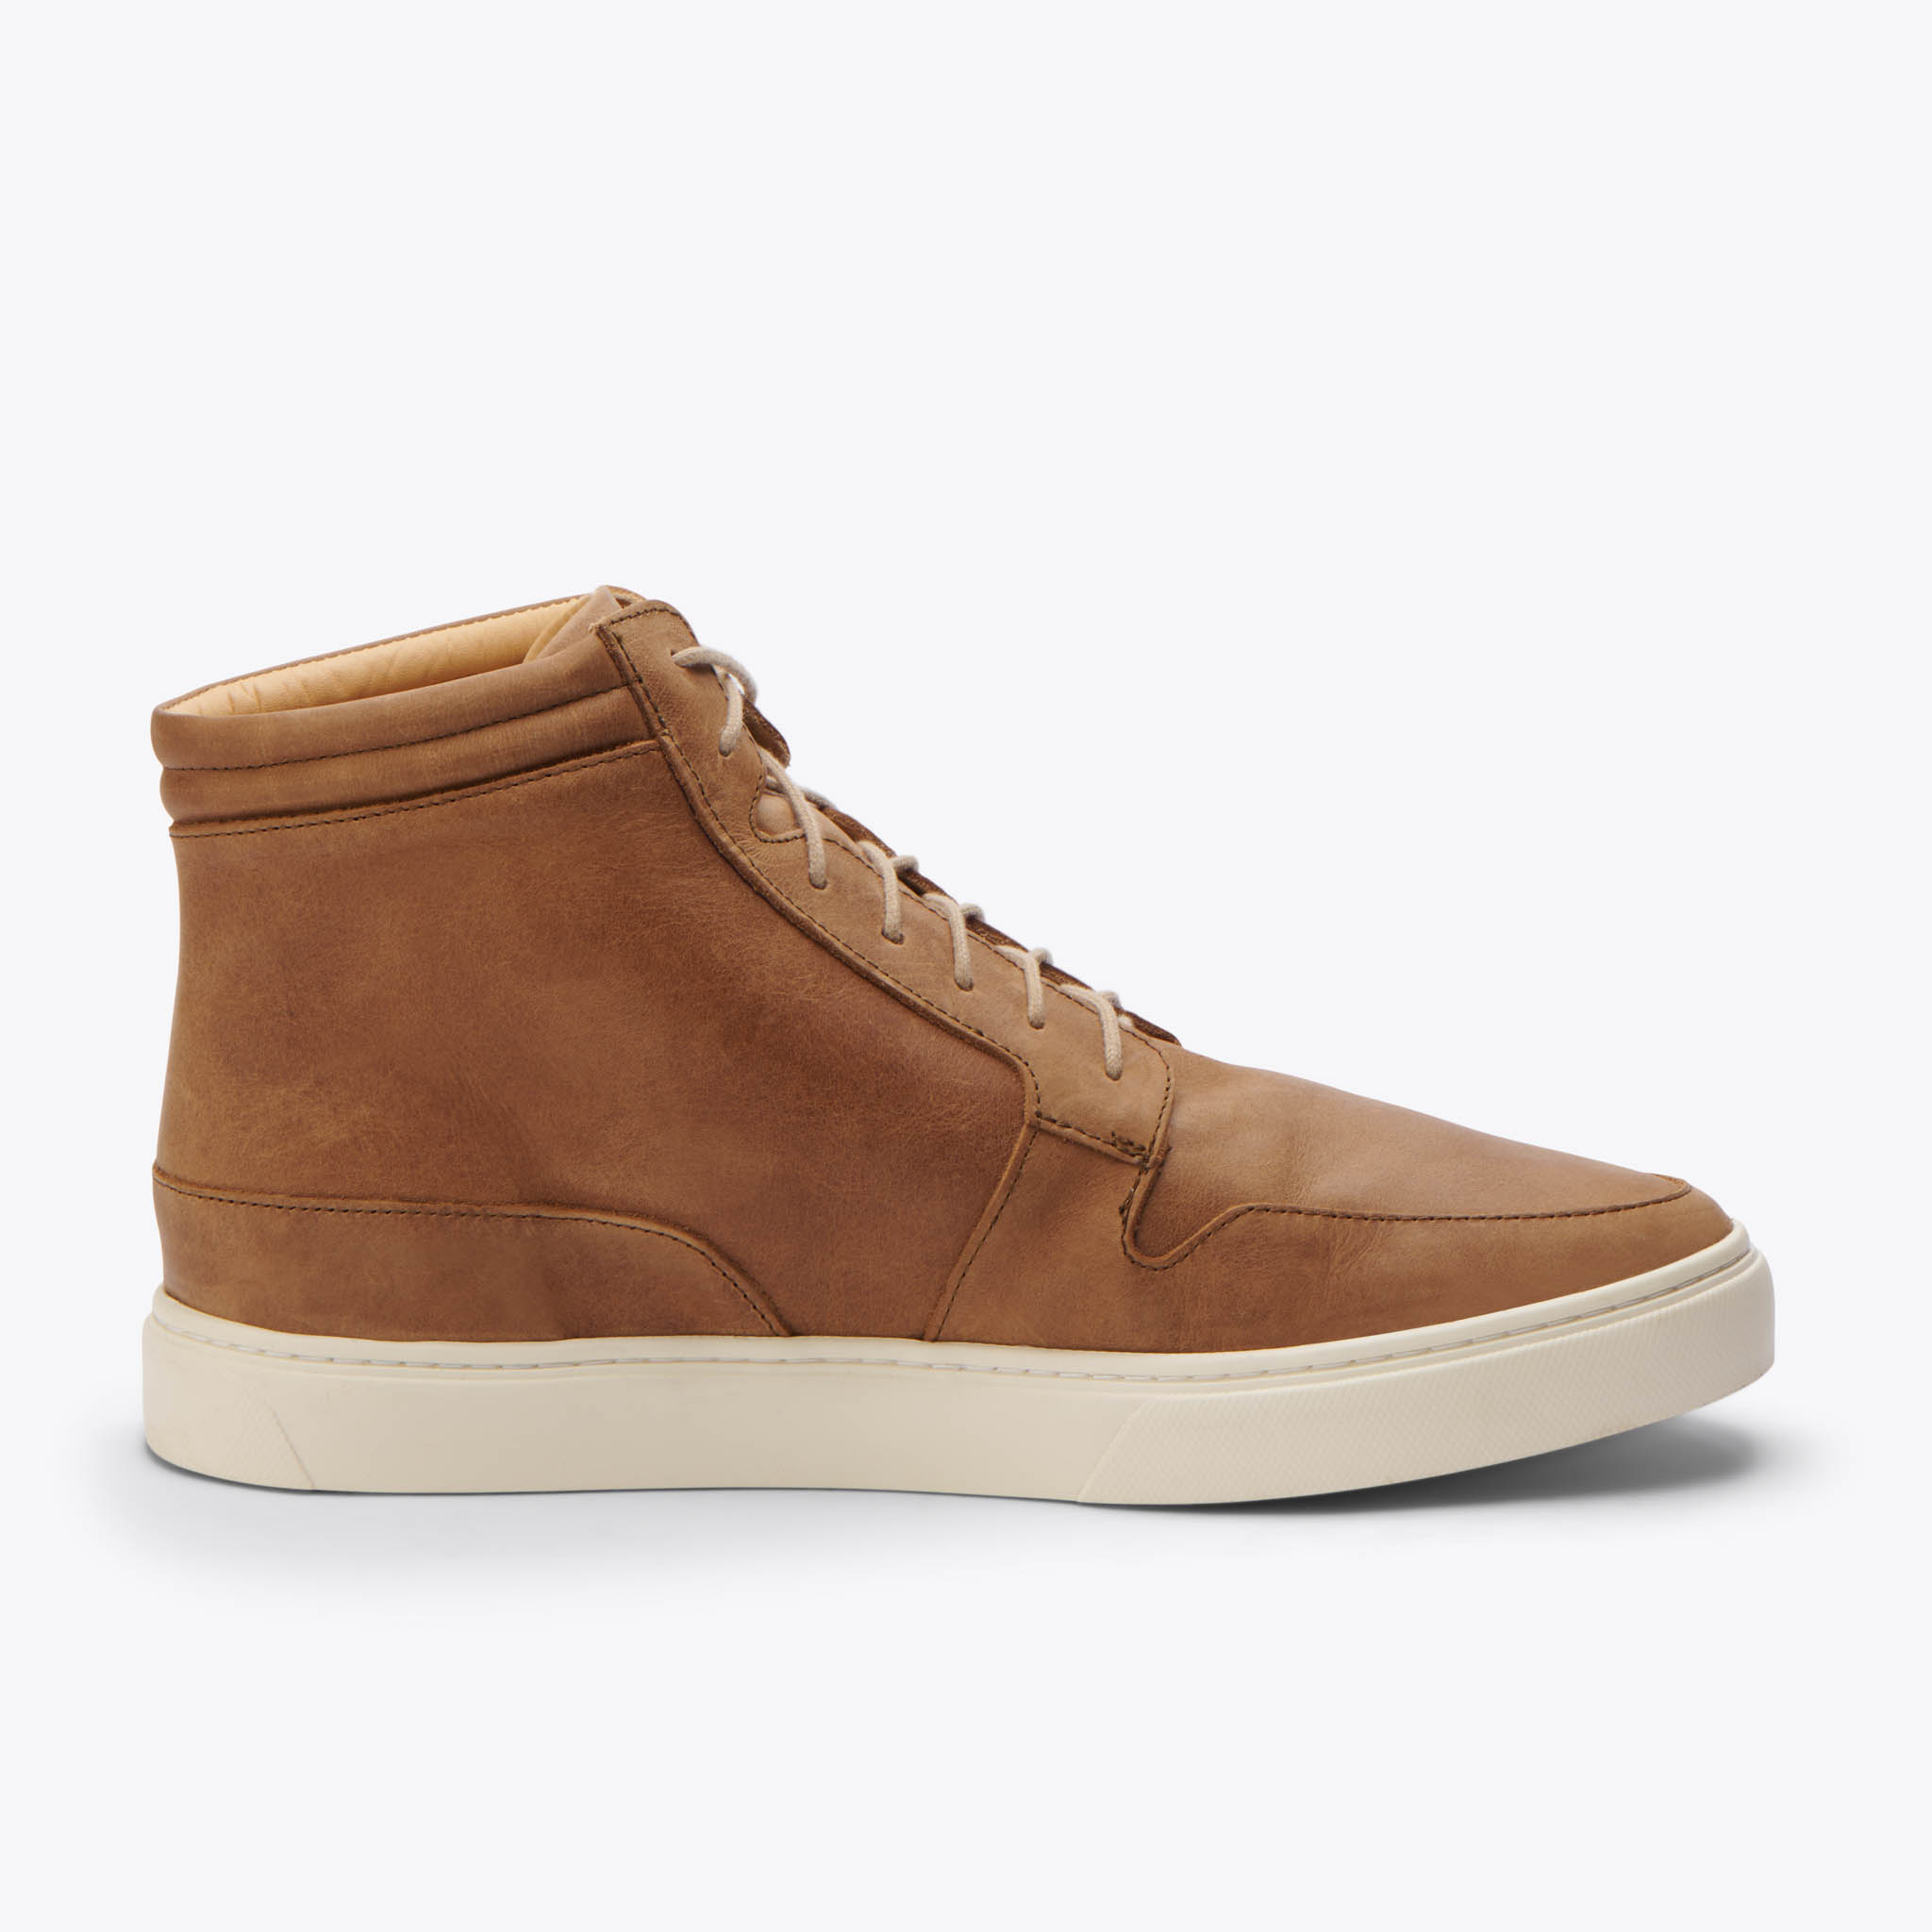 Nisolo - Rey High Top Sneaker Tobacco